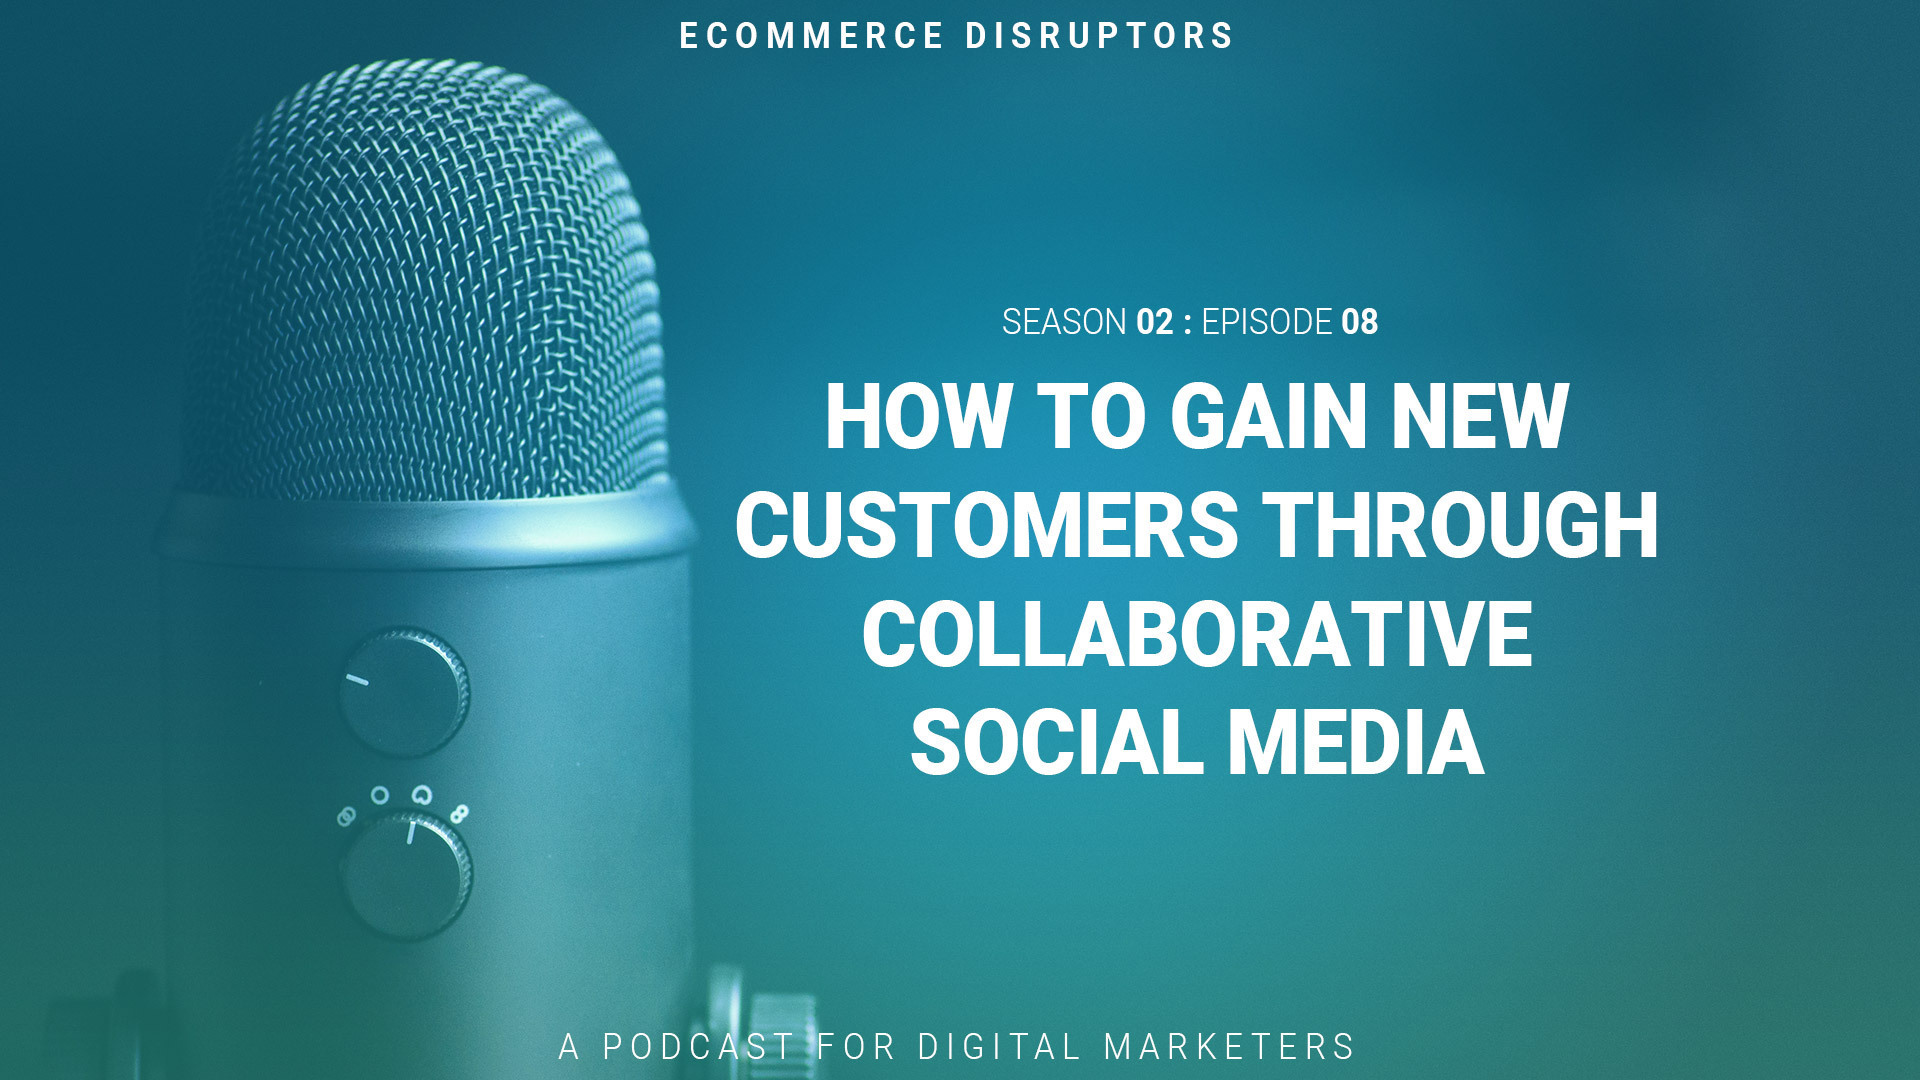 How To Gain New Customers Through Collaborative Social Media